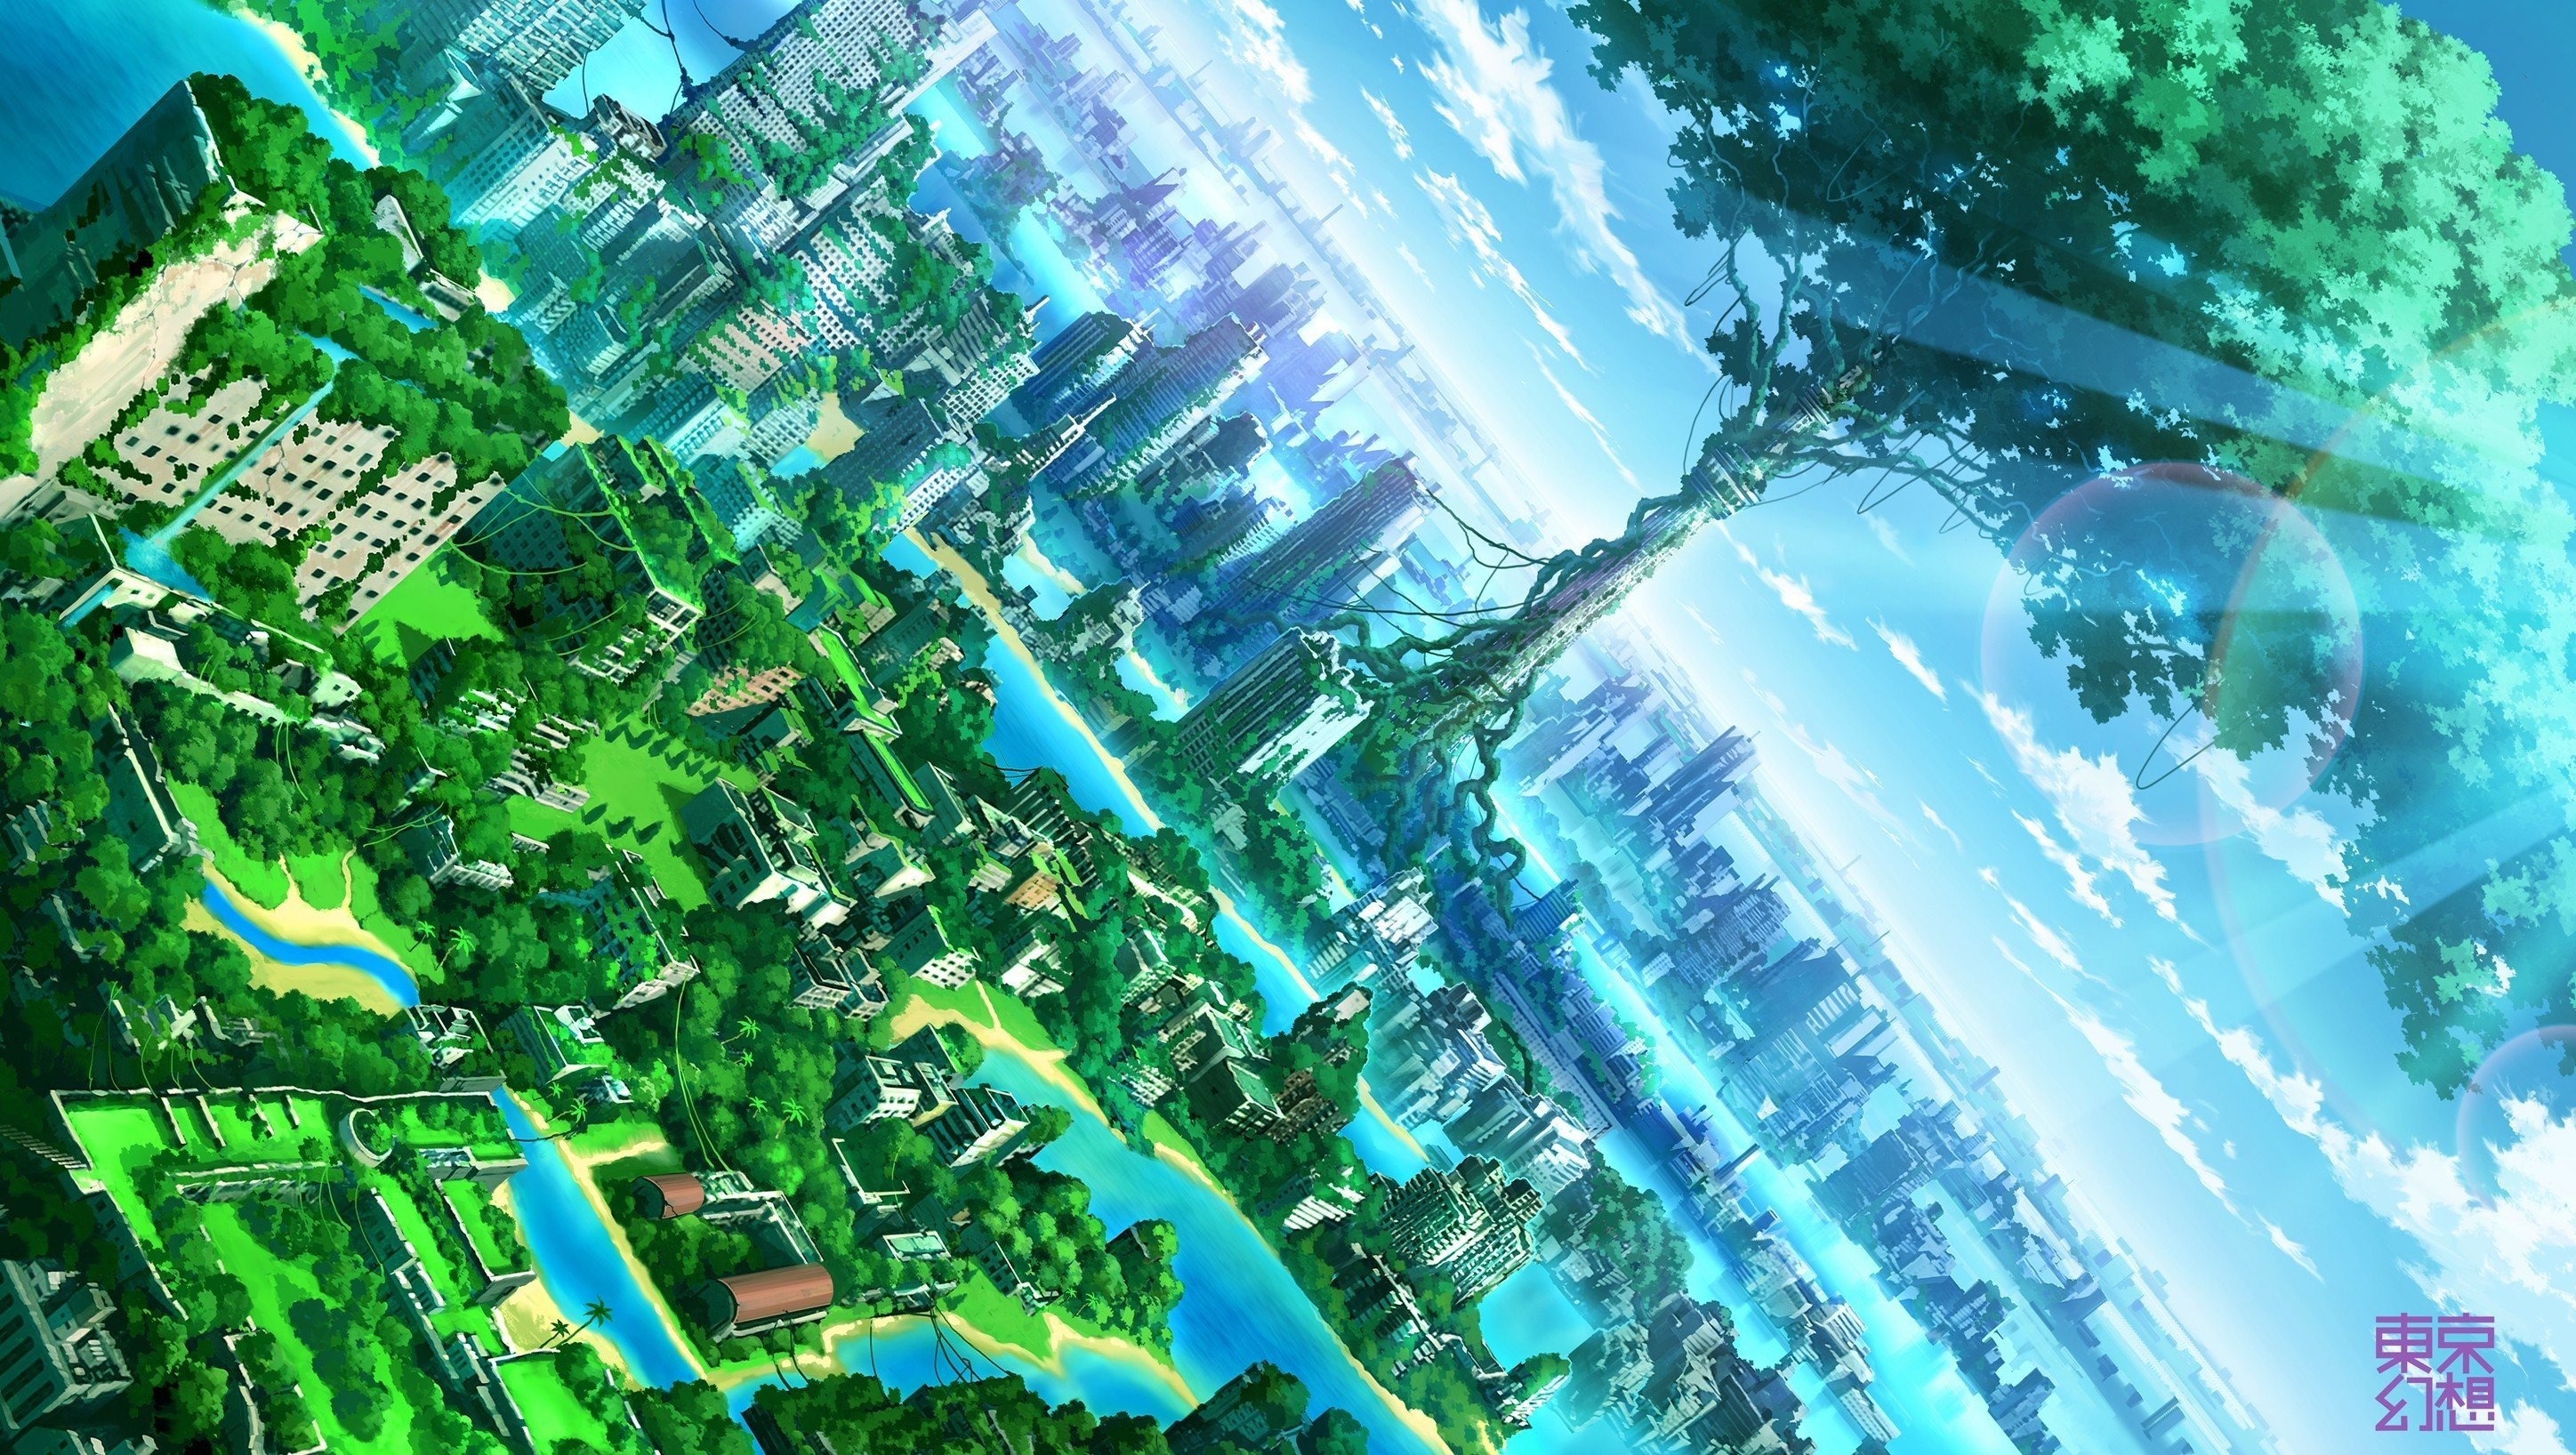 2896x1636 Anime Artwork Fantasy Art Cities Nature